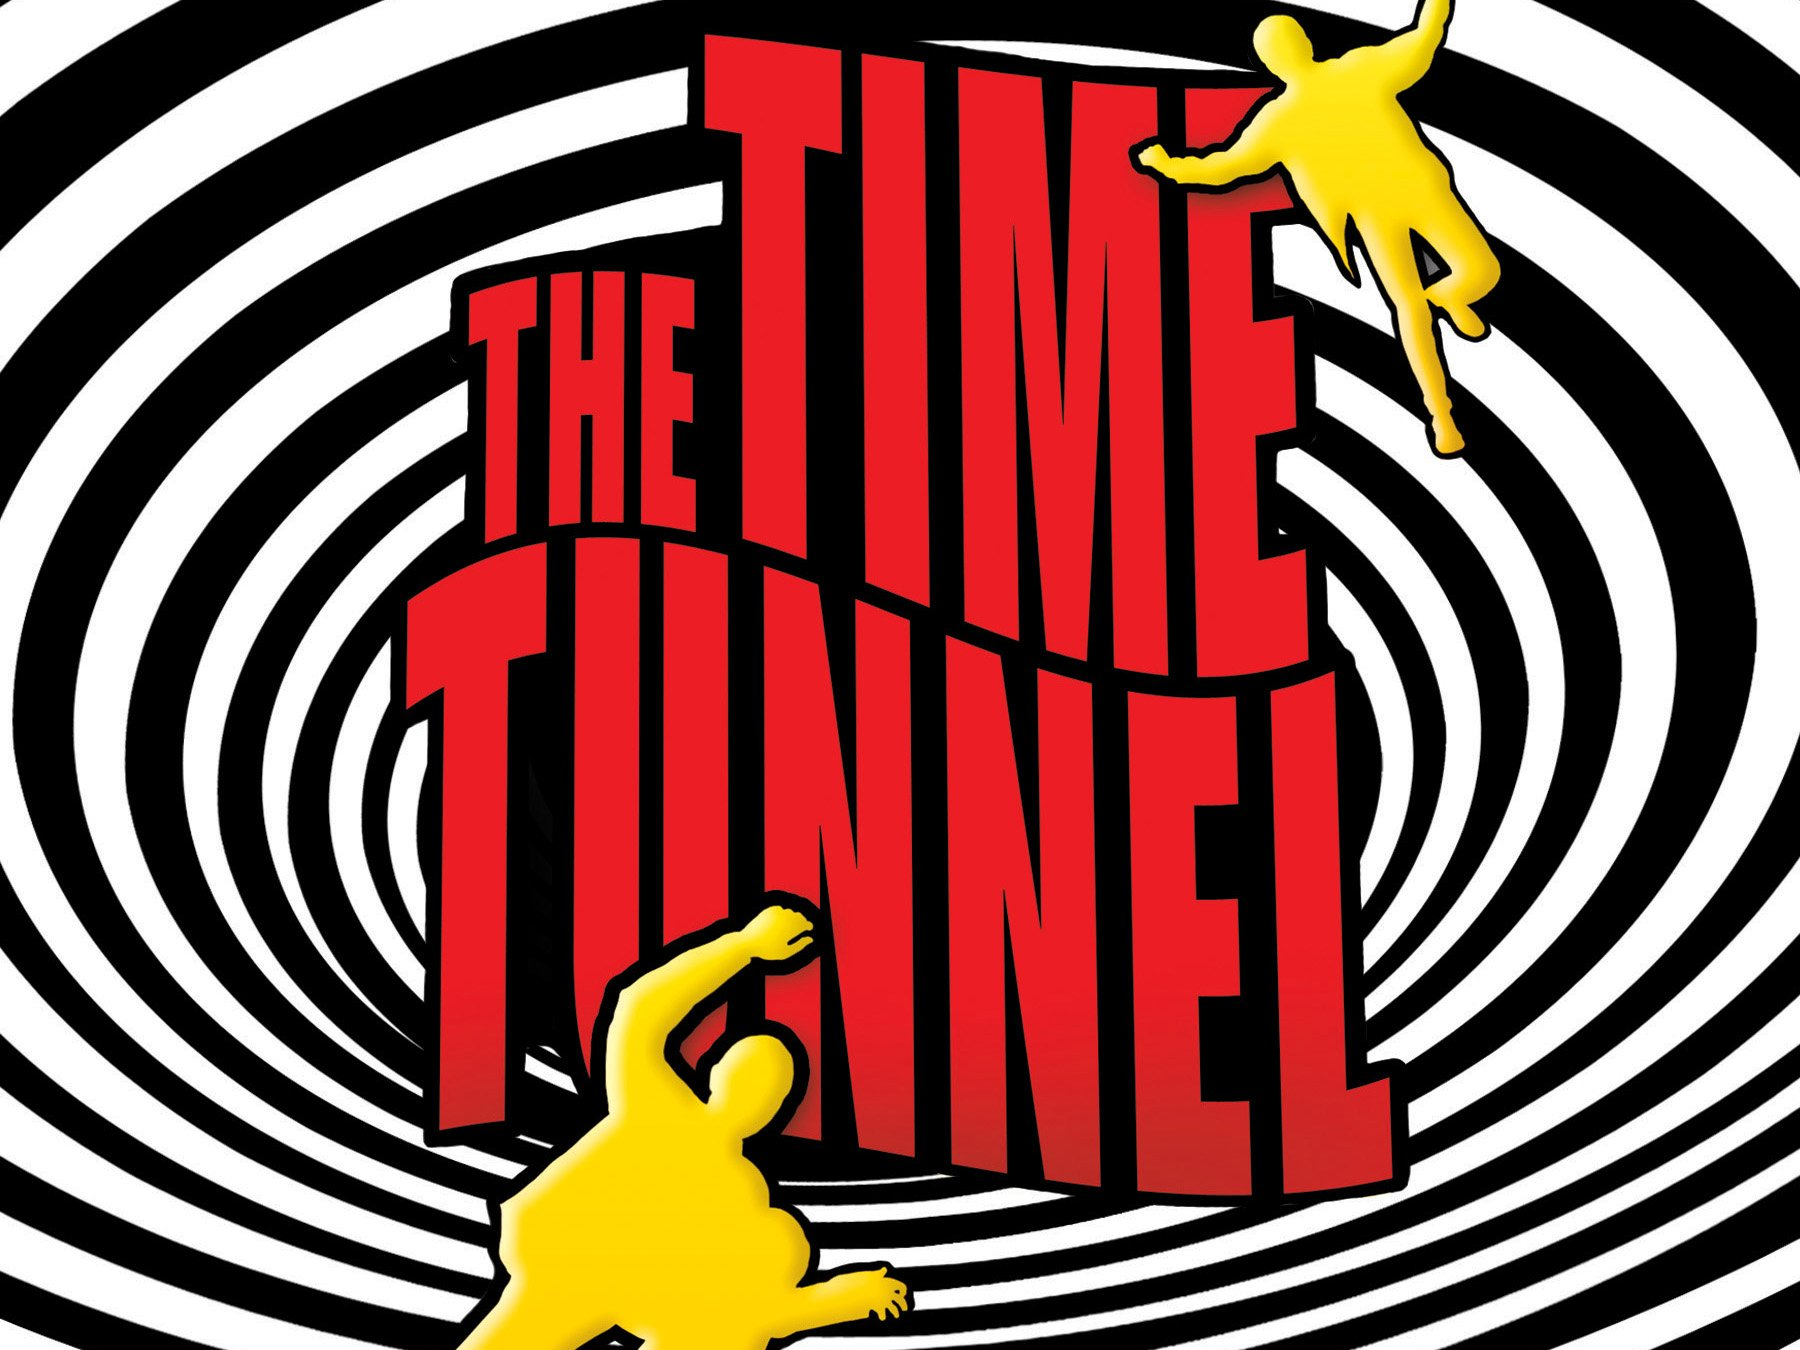 The time tunnel clipart transparent stock Amazon.com: Watch Time Tunnel Season 1 | Prime Video transparent stock